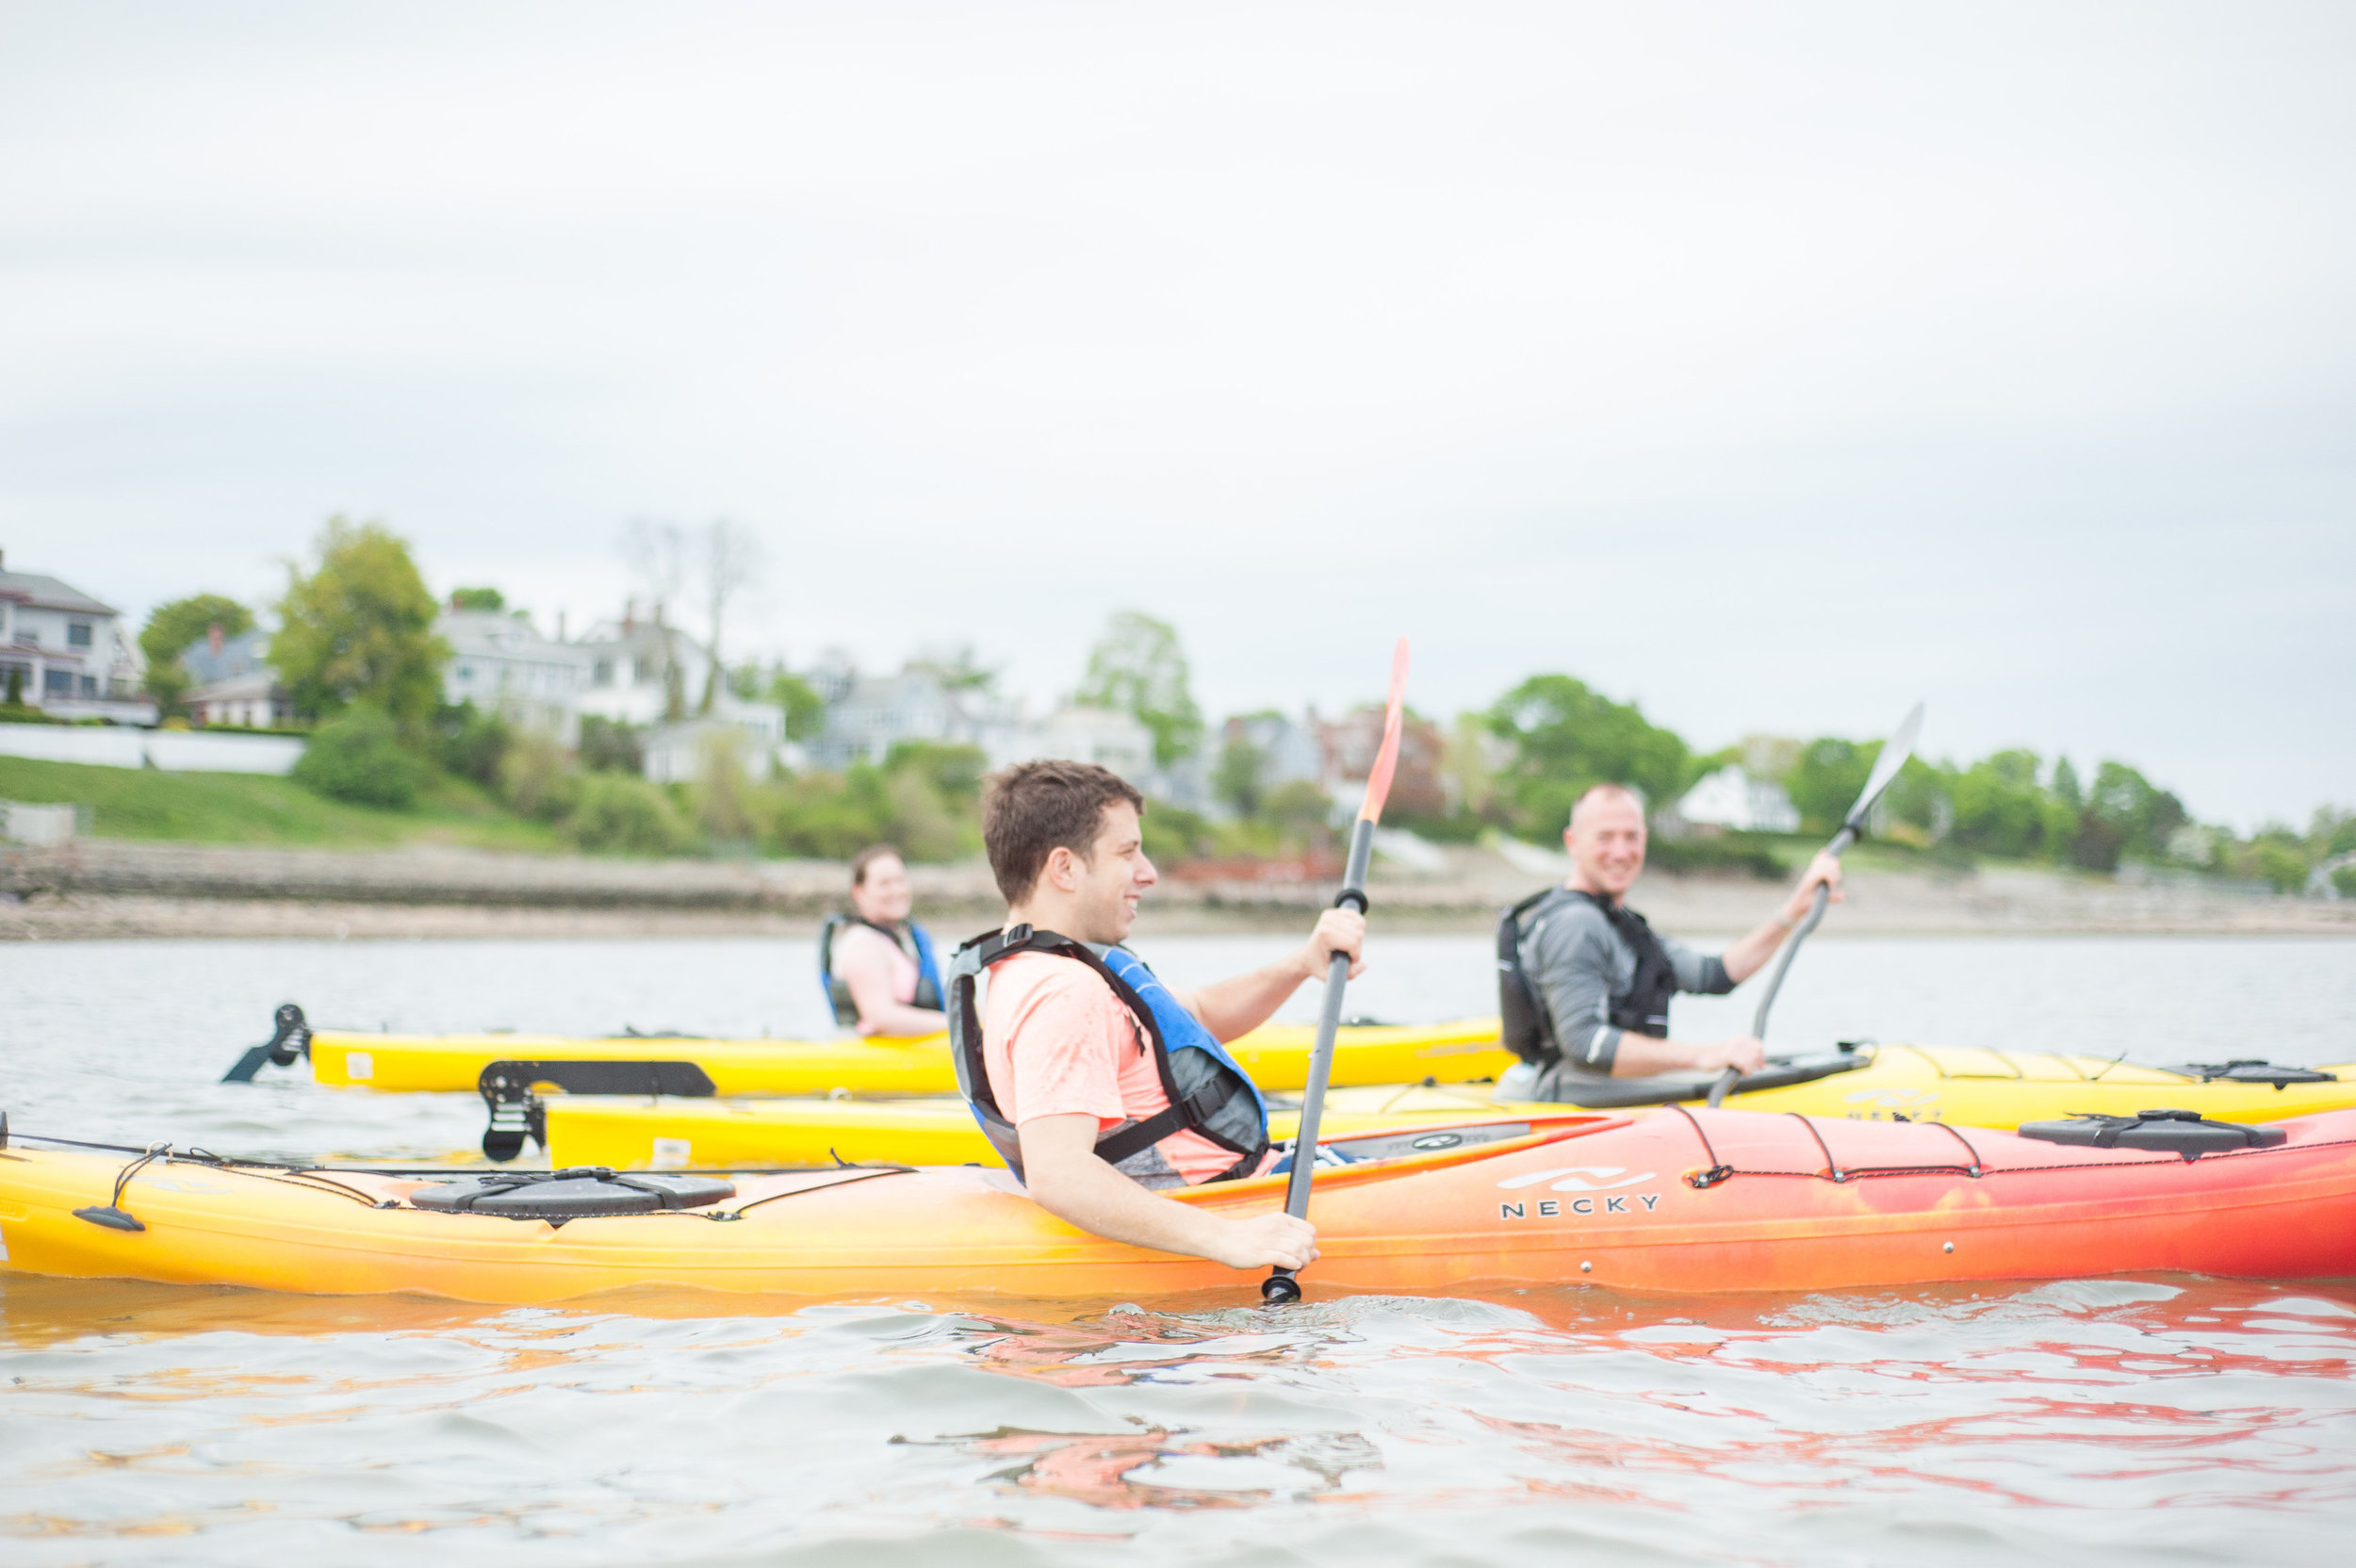 Standup Paddleboard Rentals, Lessons, and Tours in Massachusetts